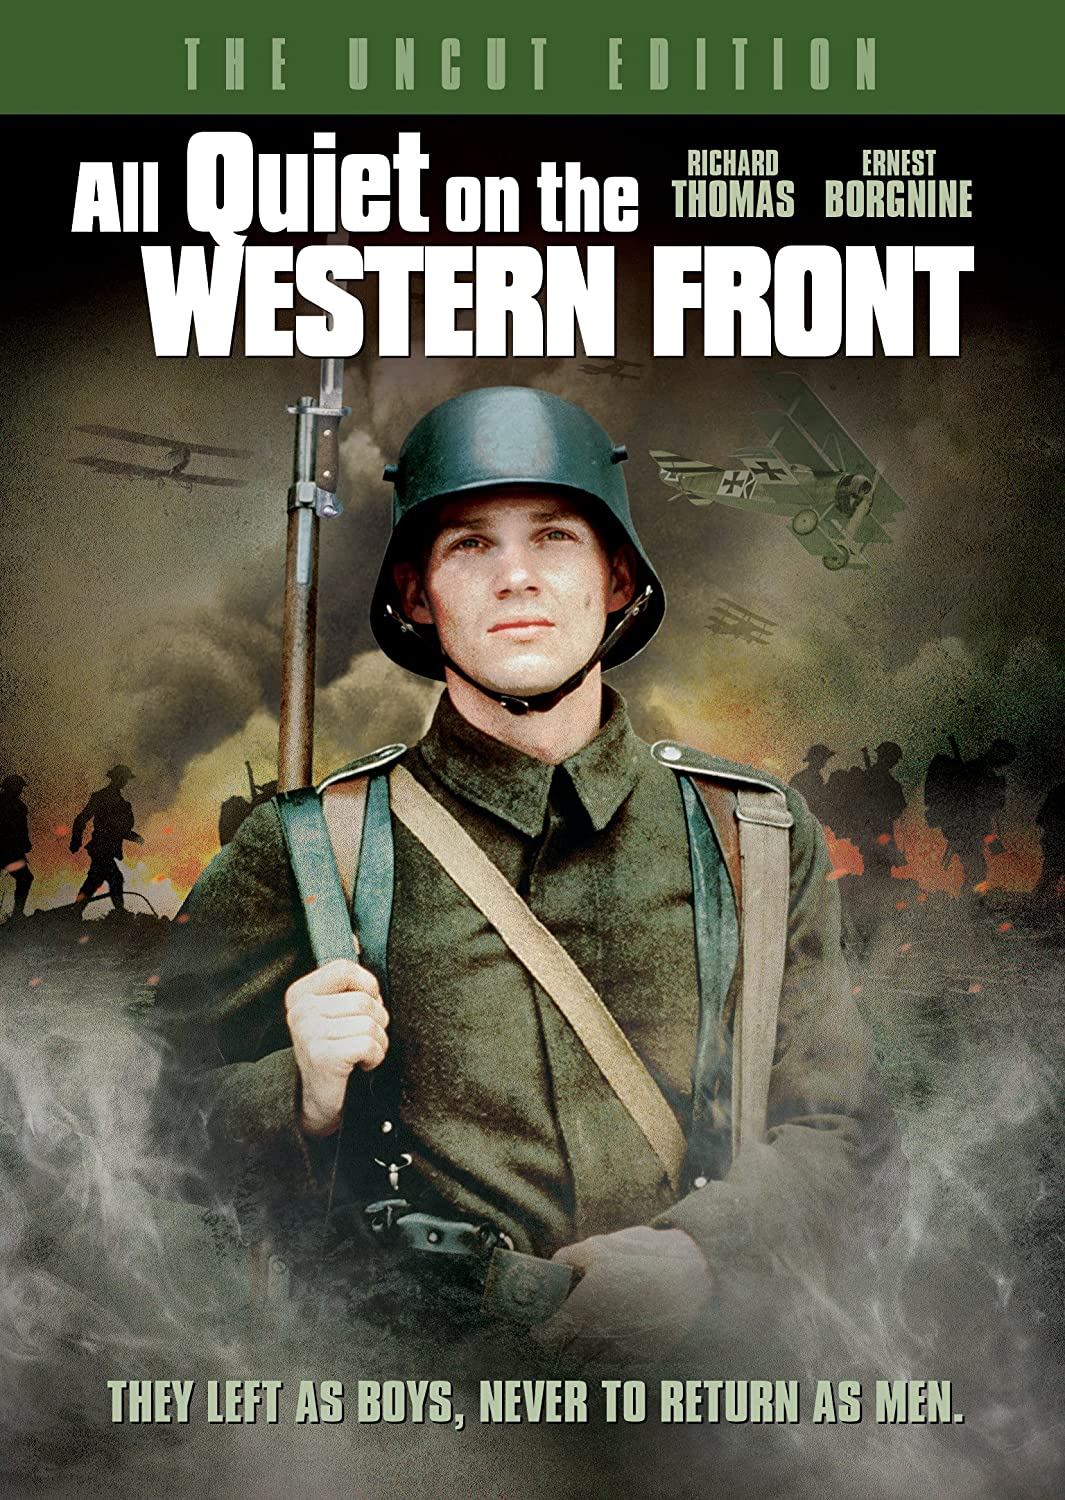 All Quiet On The Western Front - The Uncut Edition Richard Thomas Ernest Borgnine Ian Holm Donald Pleasence